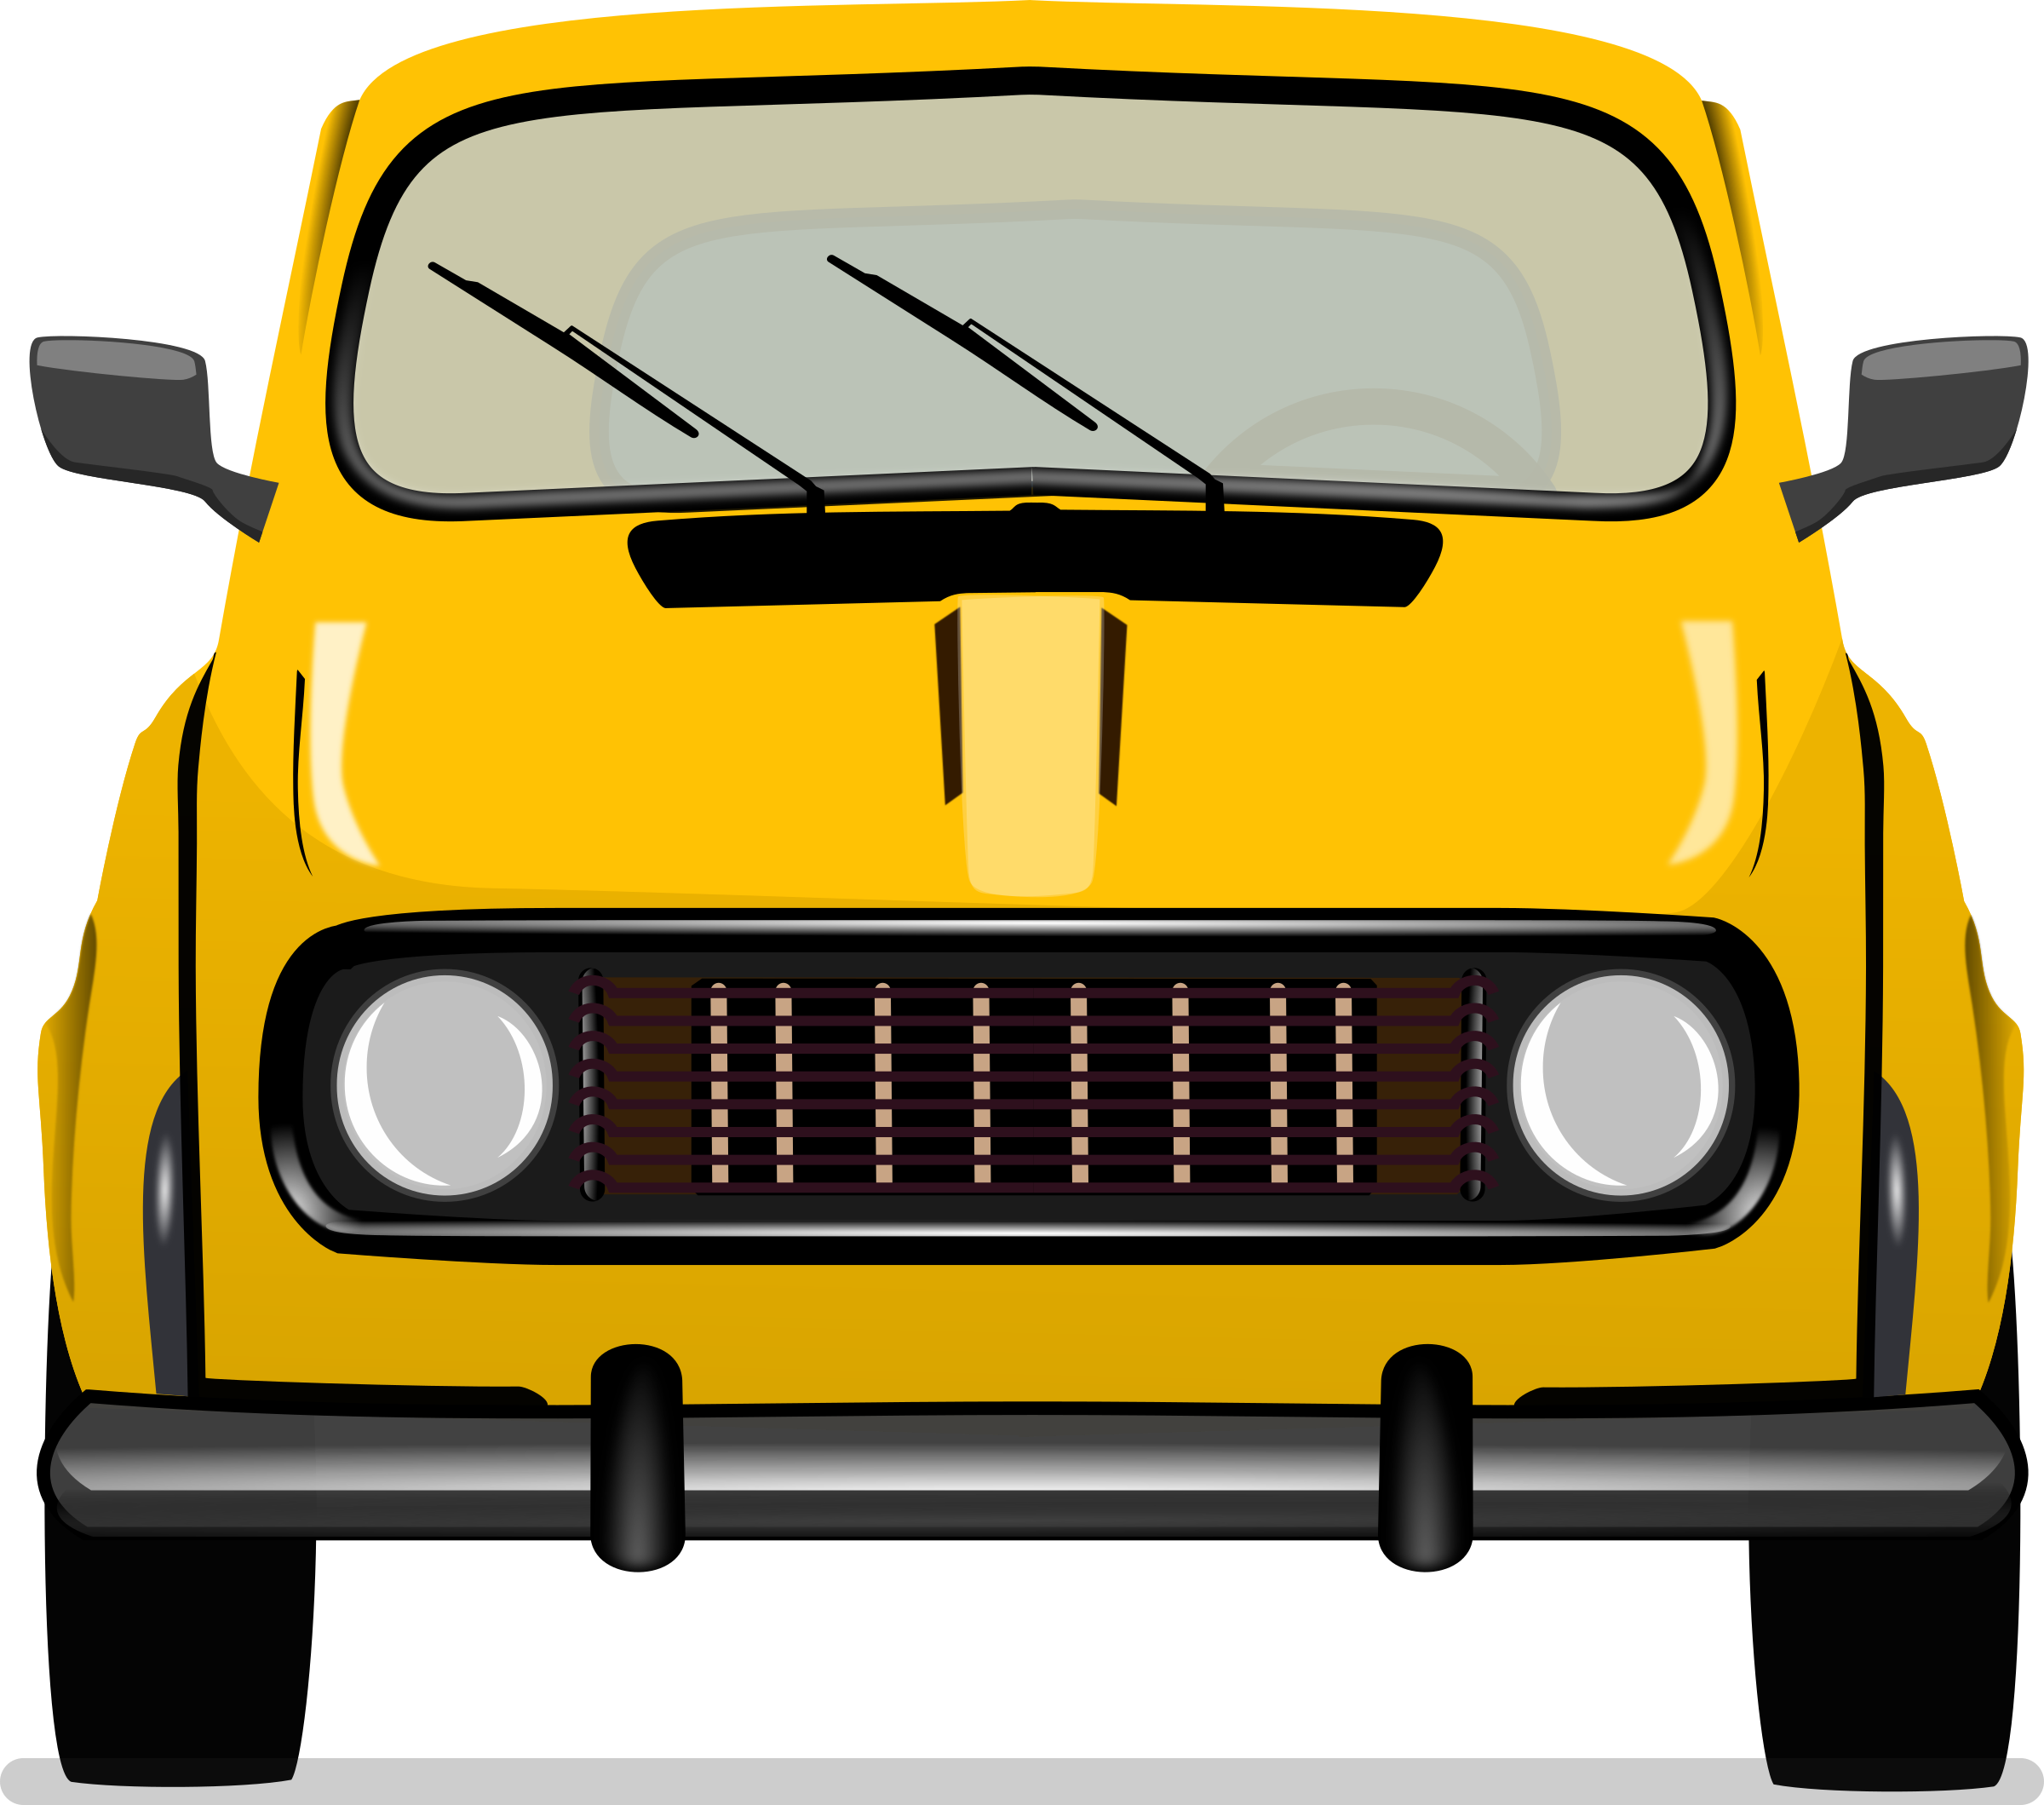 Car Frontview Vintage Old - Remix by monsterbraingames